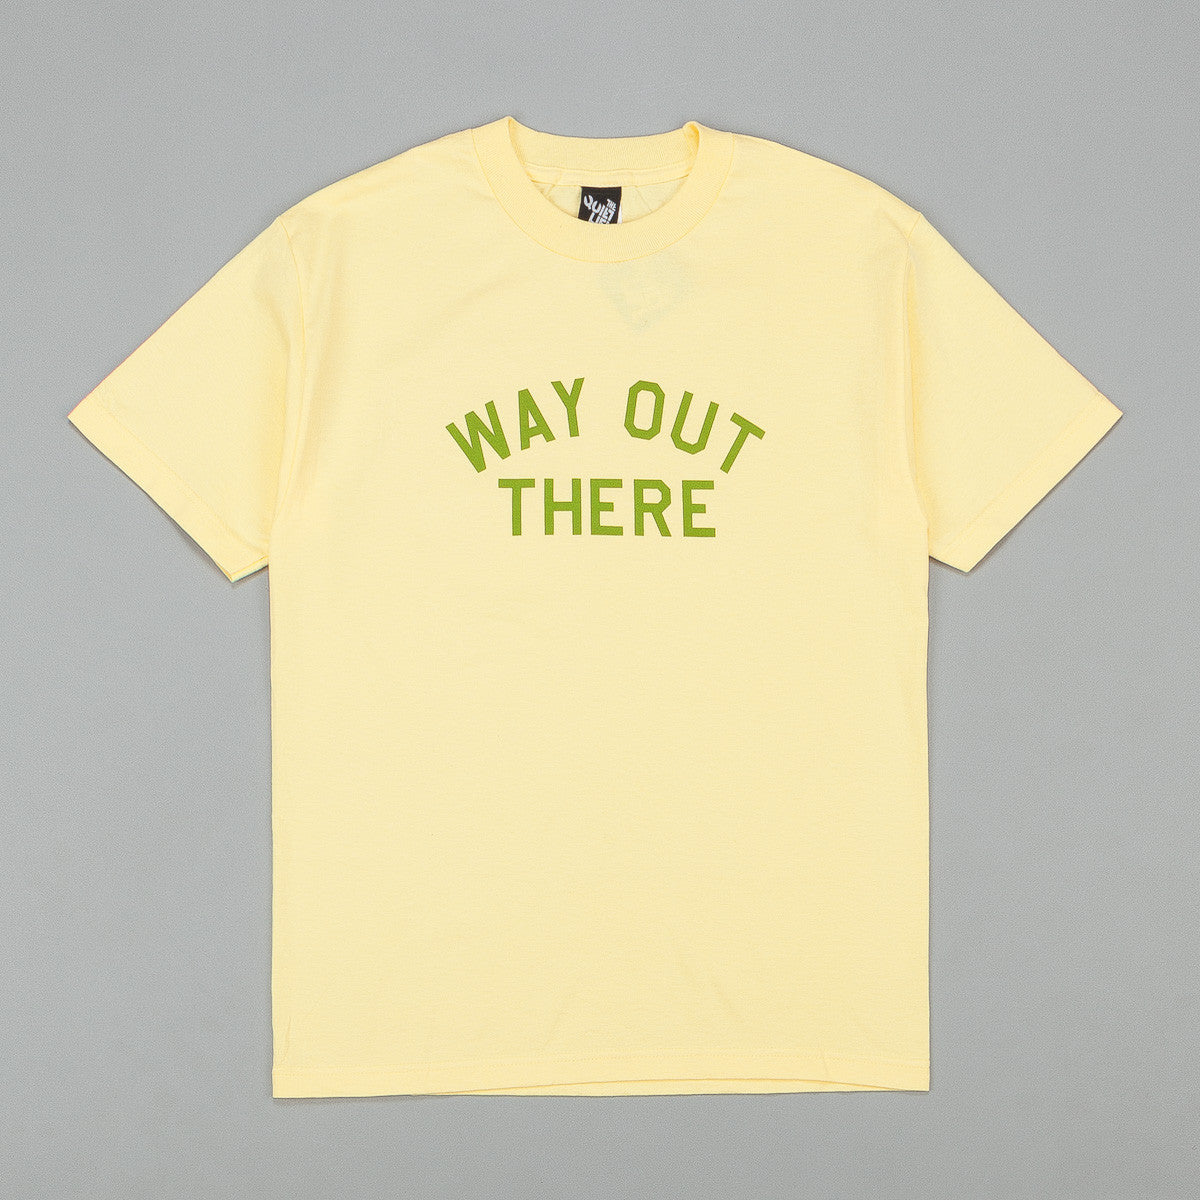 The Quiet Life Way Out There T-Shirt